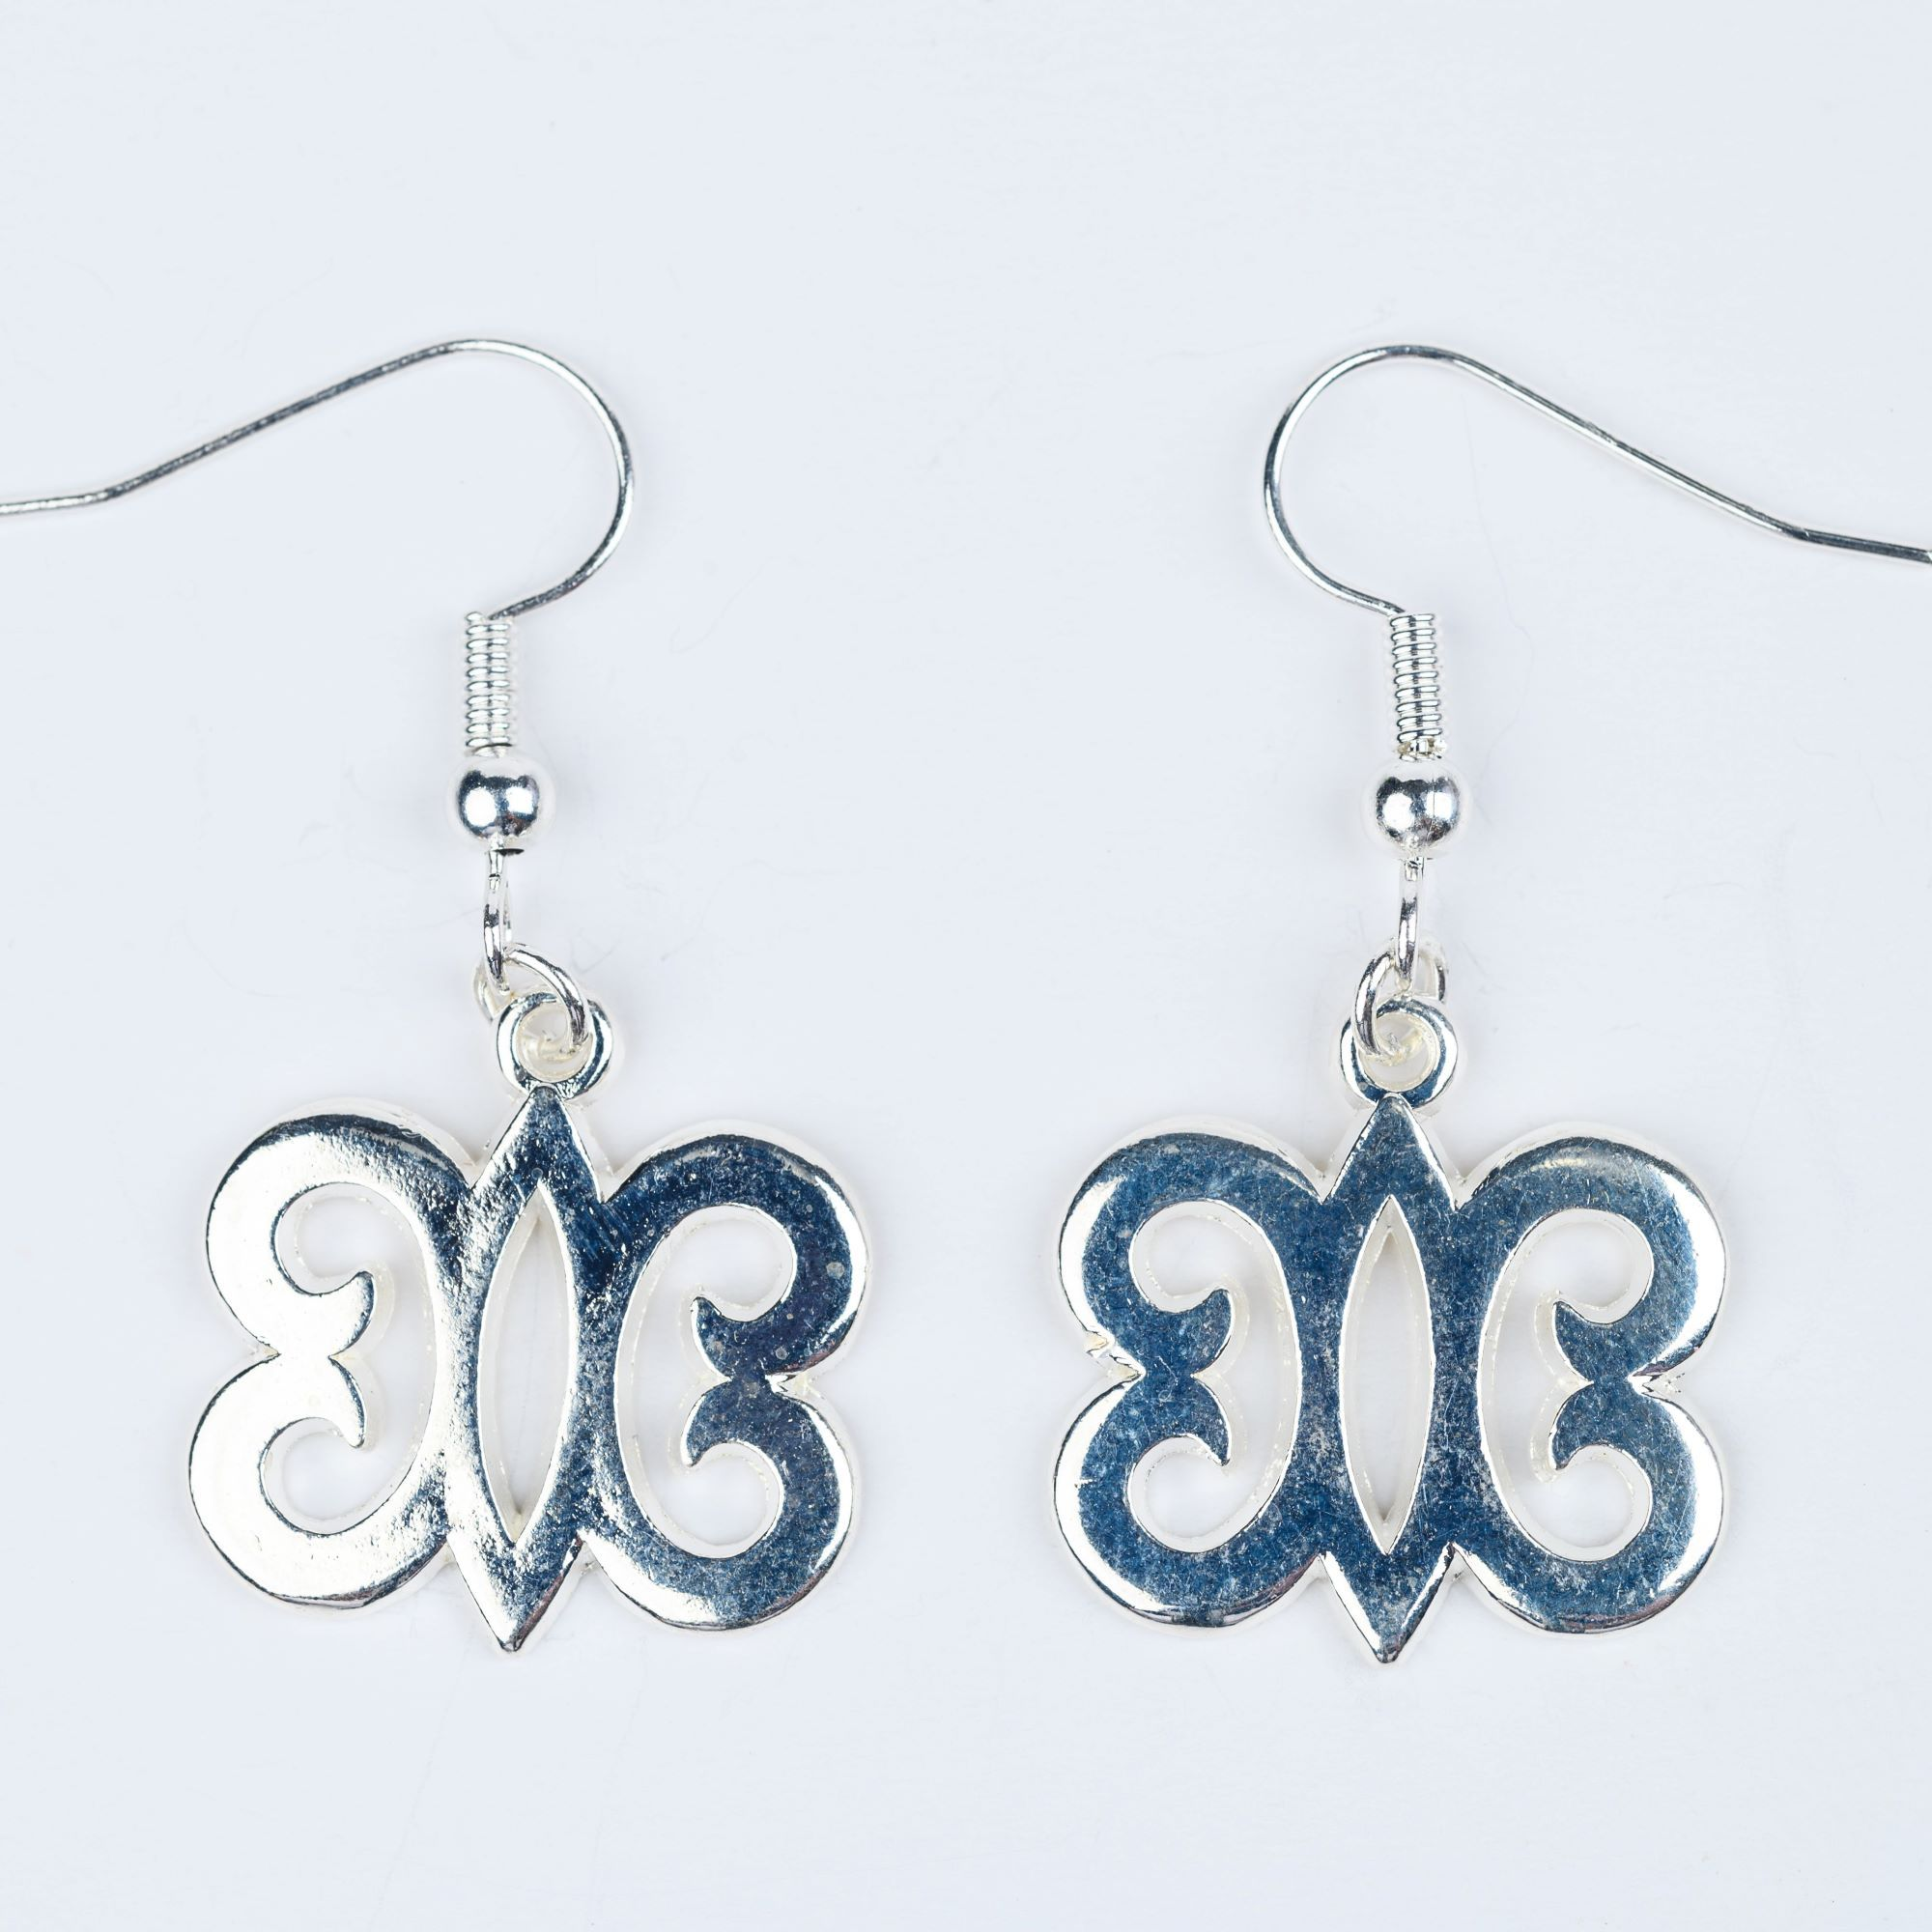 ME™ Hye Won Hye Silvertone Earrings